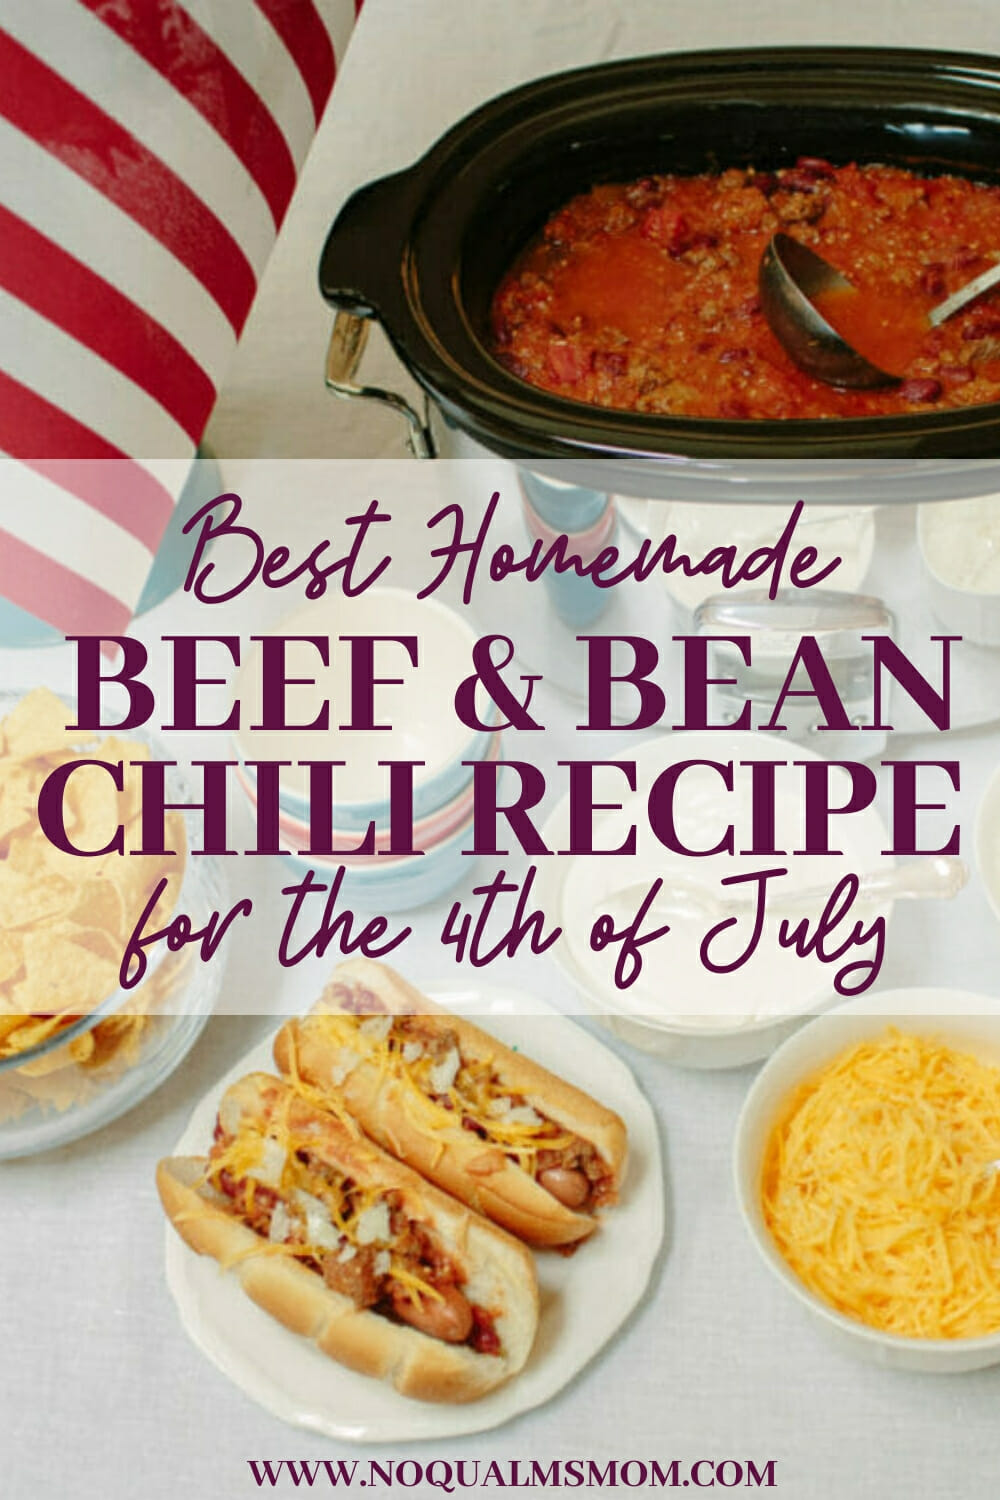 NQM Awesome Beef & Bean Chili Recipe